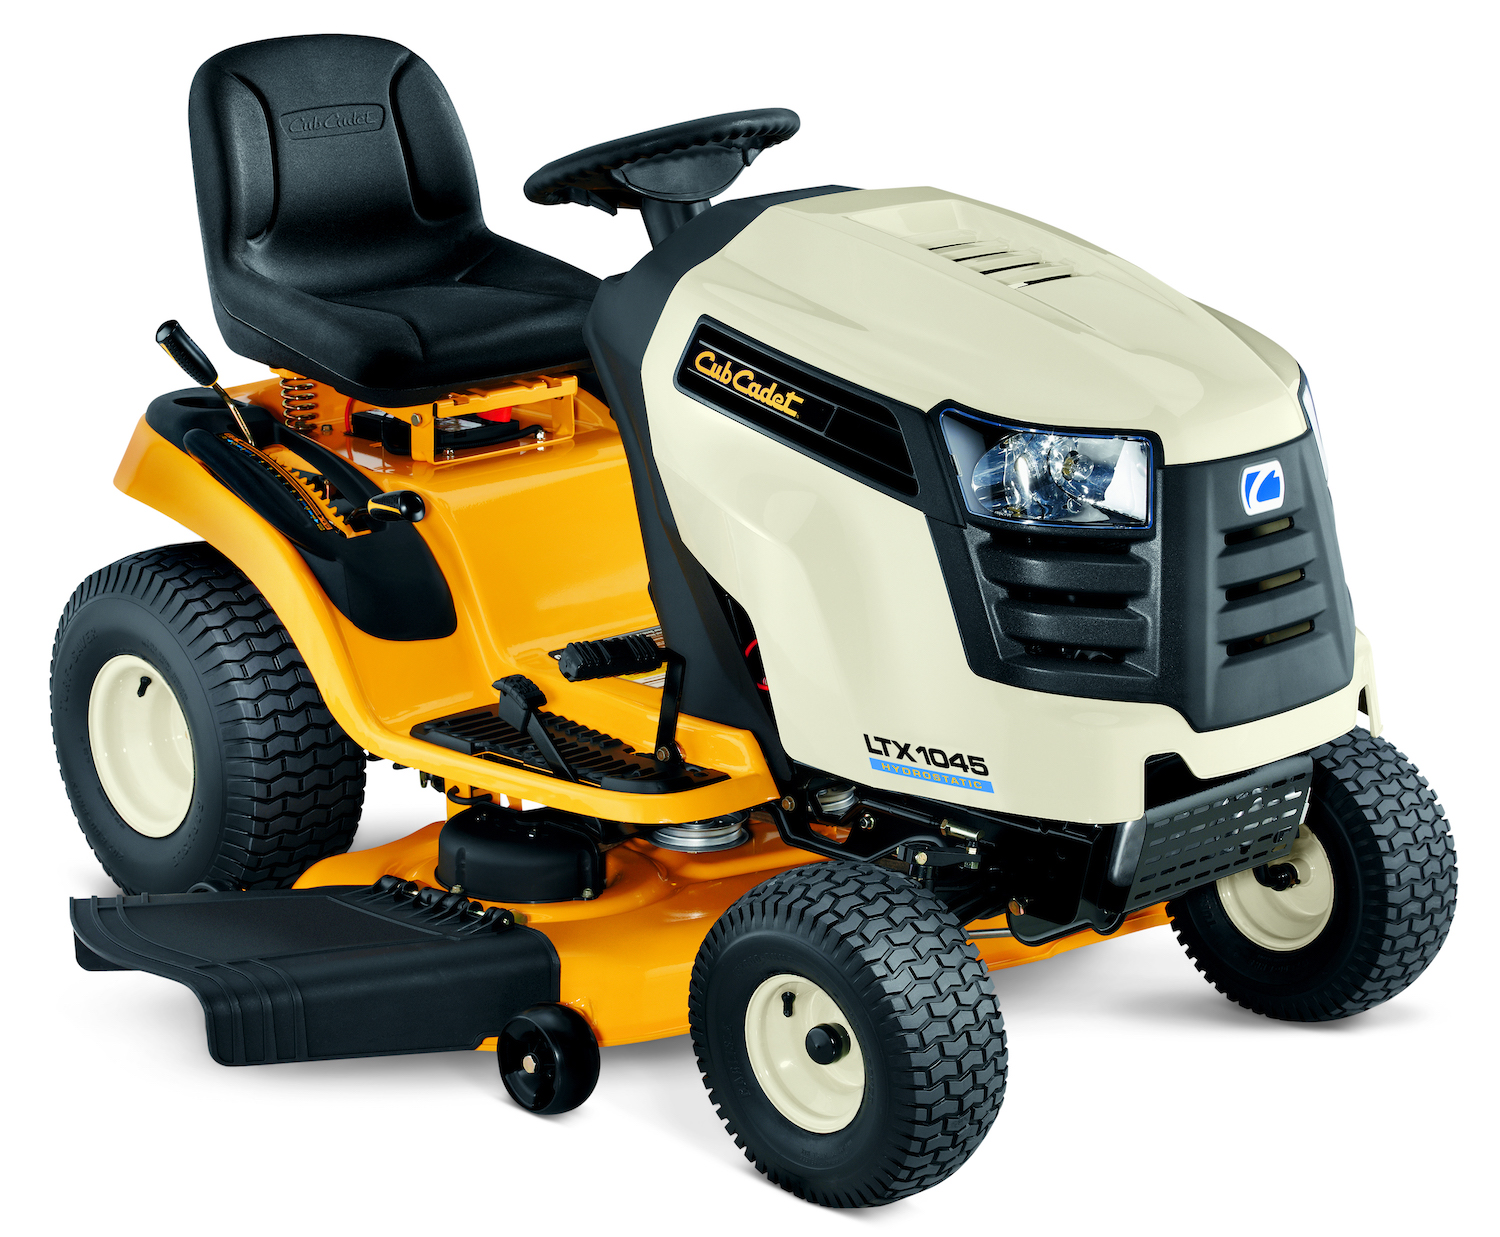 Riding Lawn Mowers Cub : Best riding lawn mowers under